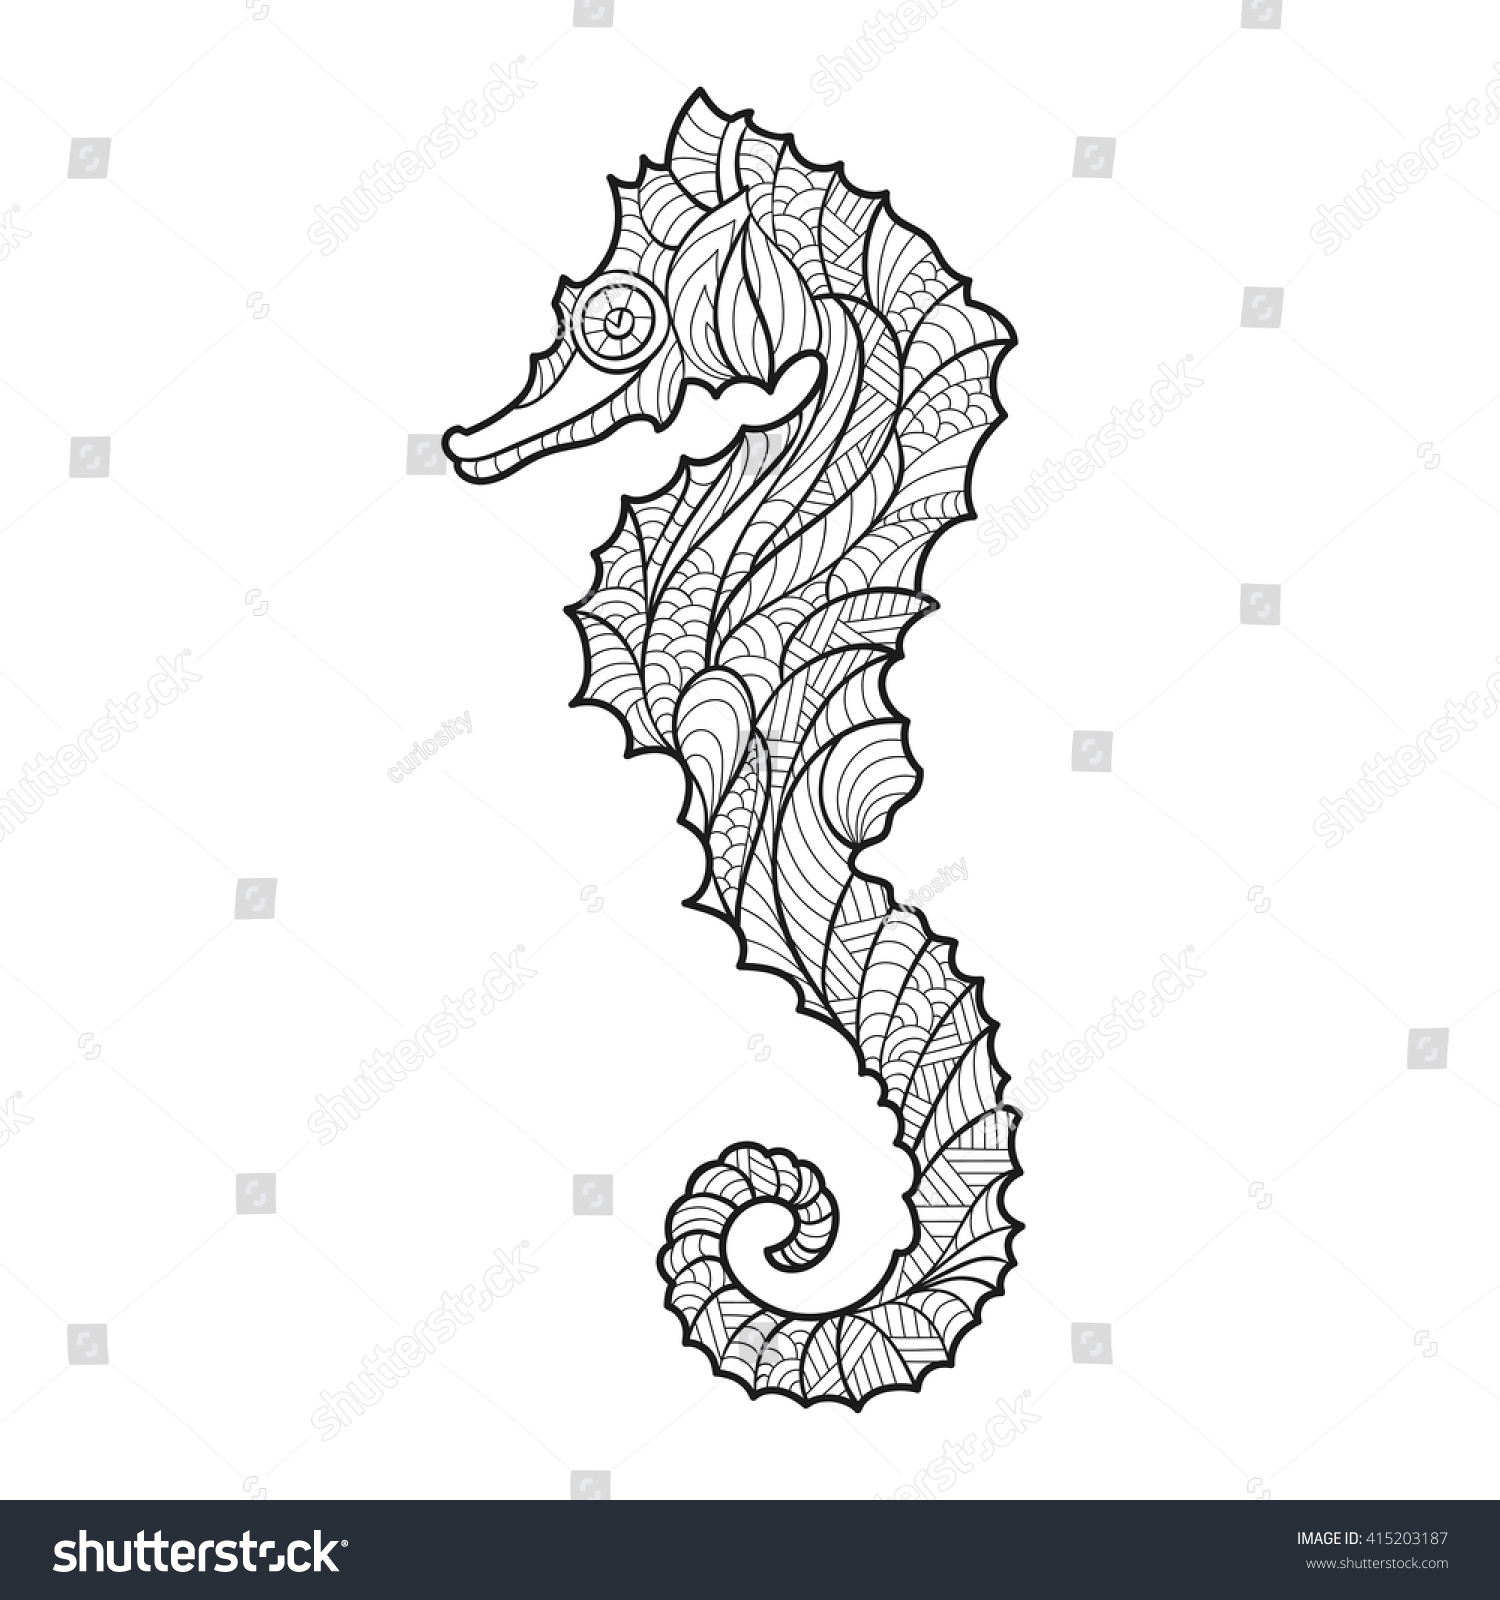 vector monochrome hand drawn zentagle illustration stock vector